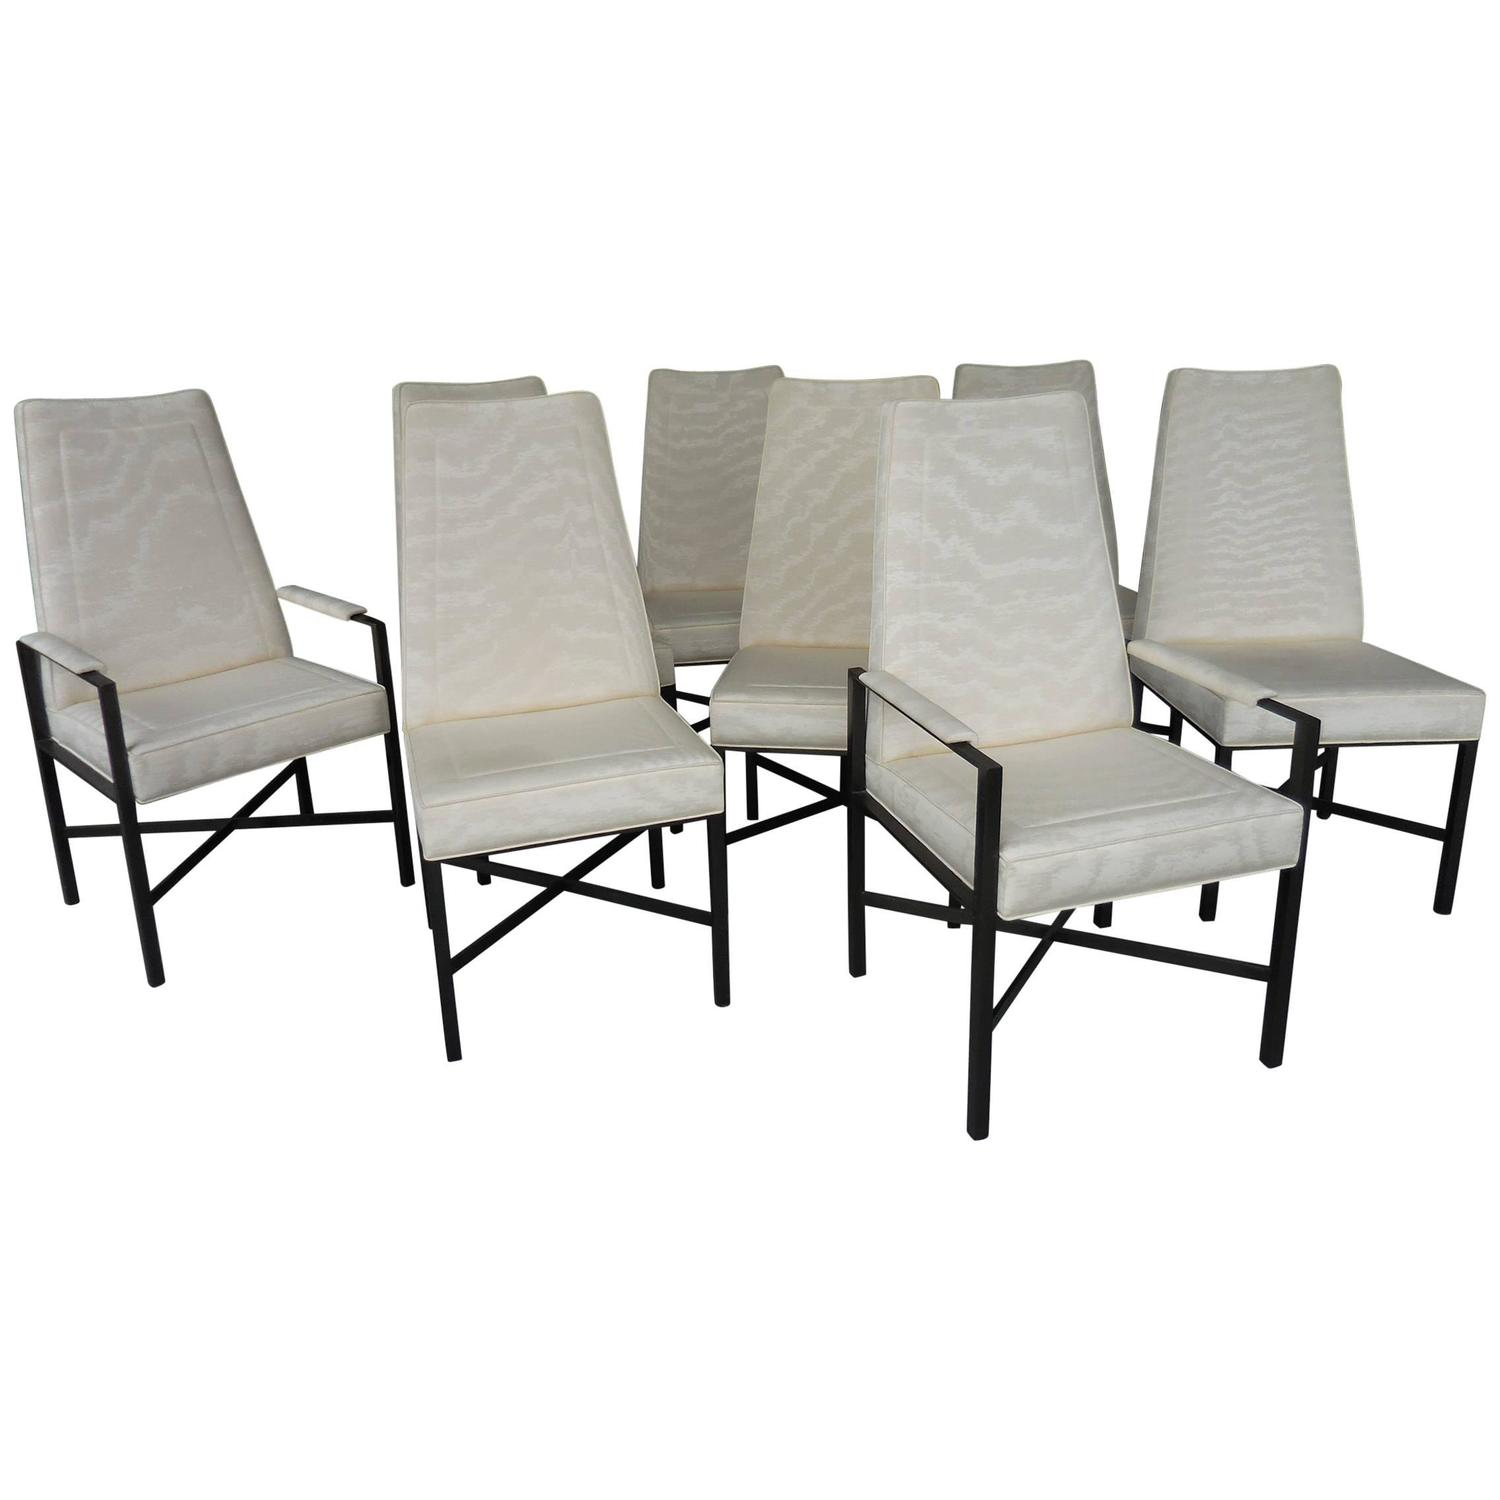 Oil Rubbed Bronze Chairs ~ Eight rare dining chairs by dunbar oil rubbed bronze